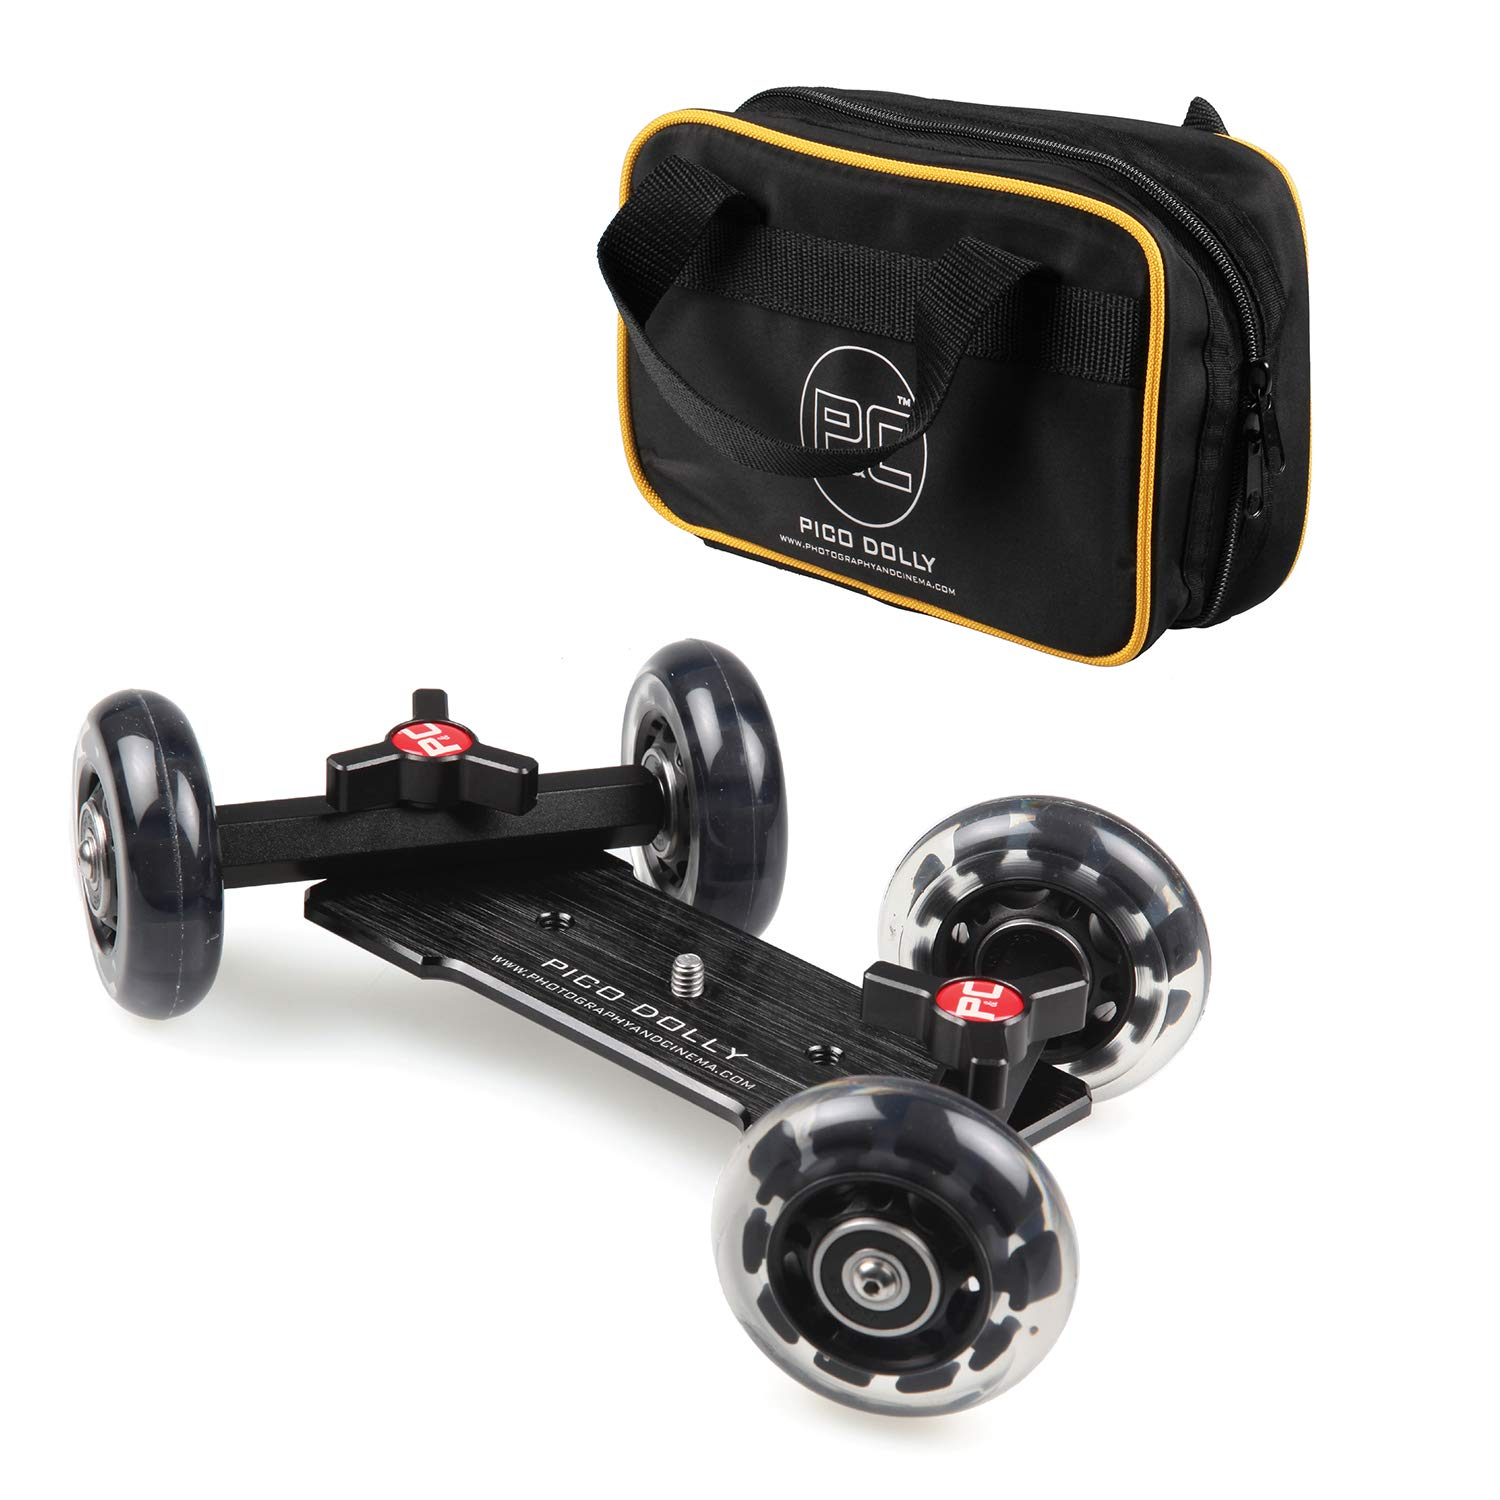 Pico Flex Dolly, Camera Table Dolly, Skater Dolly, Camera Slider Dolly, Mobile Rolling Slider Dolly Car Skater Video Track Rail, DSLR Mirroless Camera Camcorder Rig (Dolly Only) by P&C